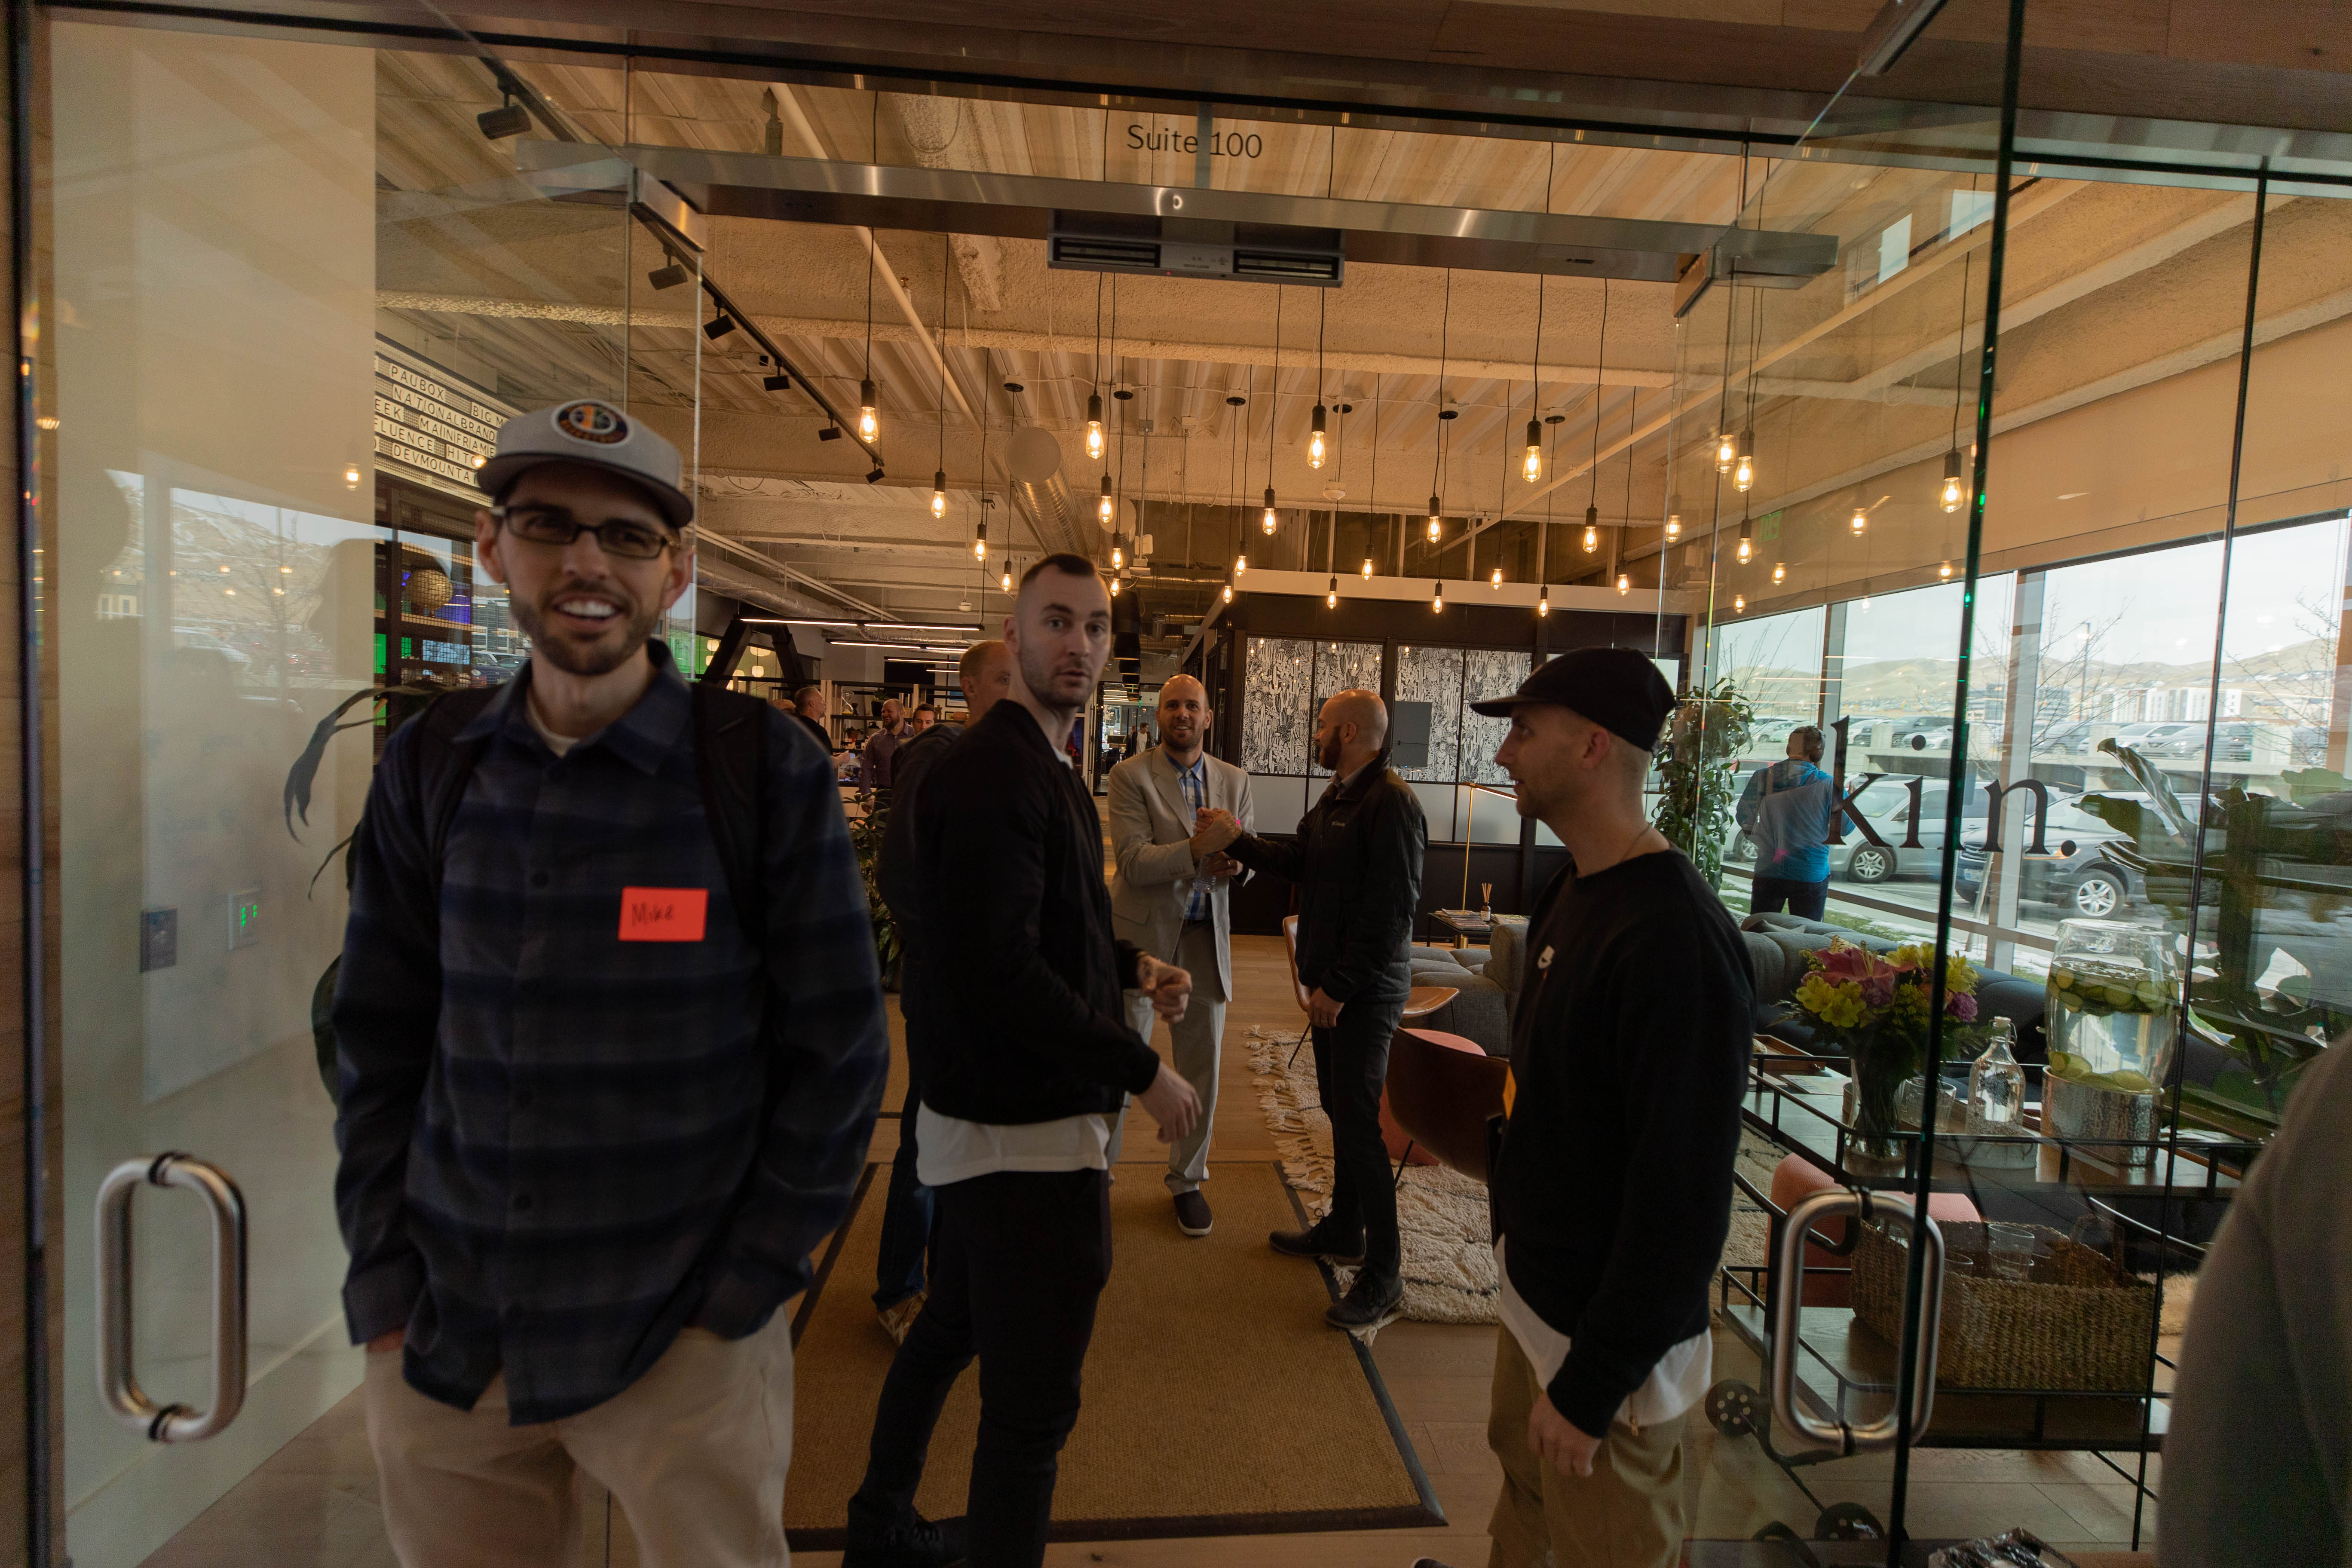 Mike from Nomatic, Reyn from Nena & Co, and a bro five at the Wooly luncheon